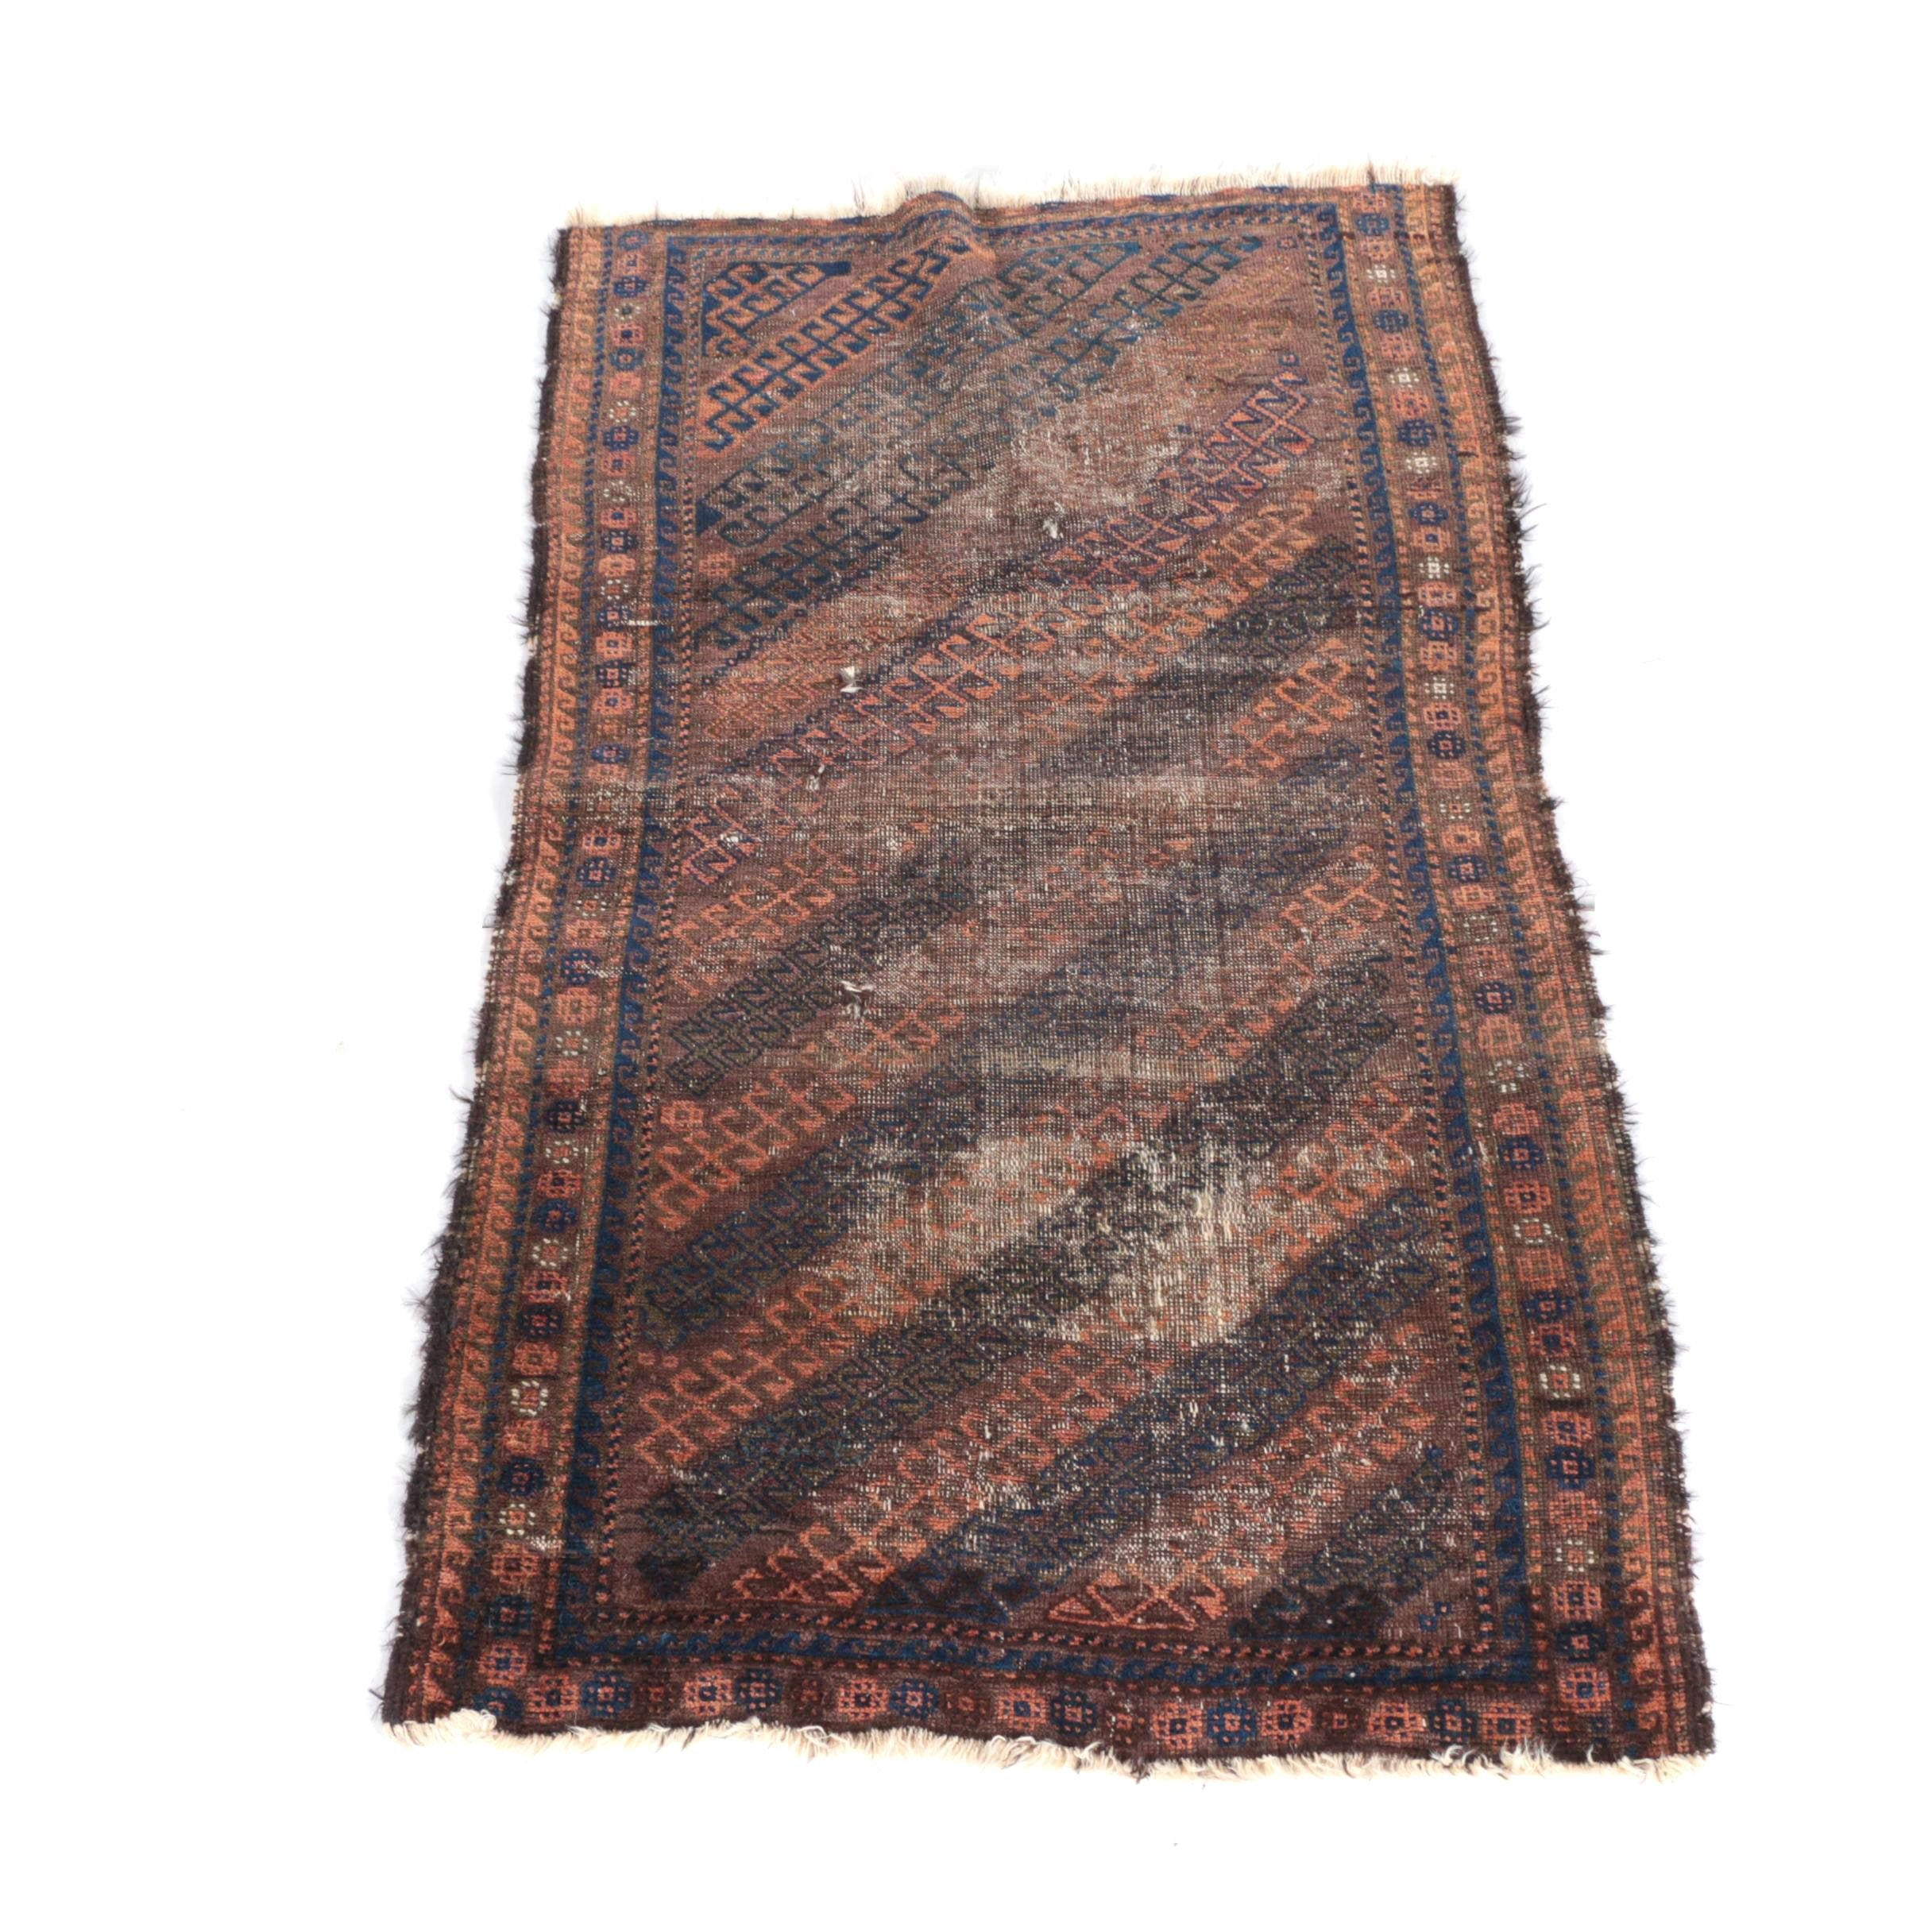 Antique Hand-Knotted Baluch Wool Area Rug